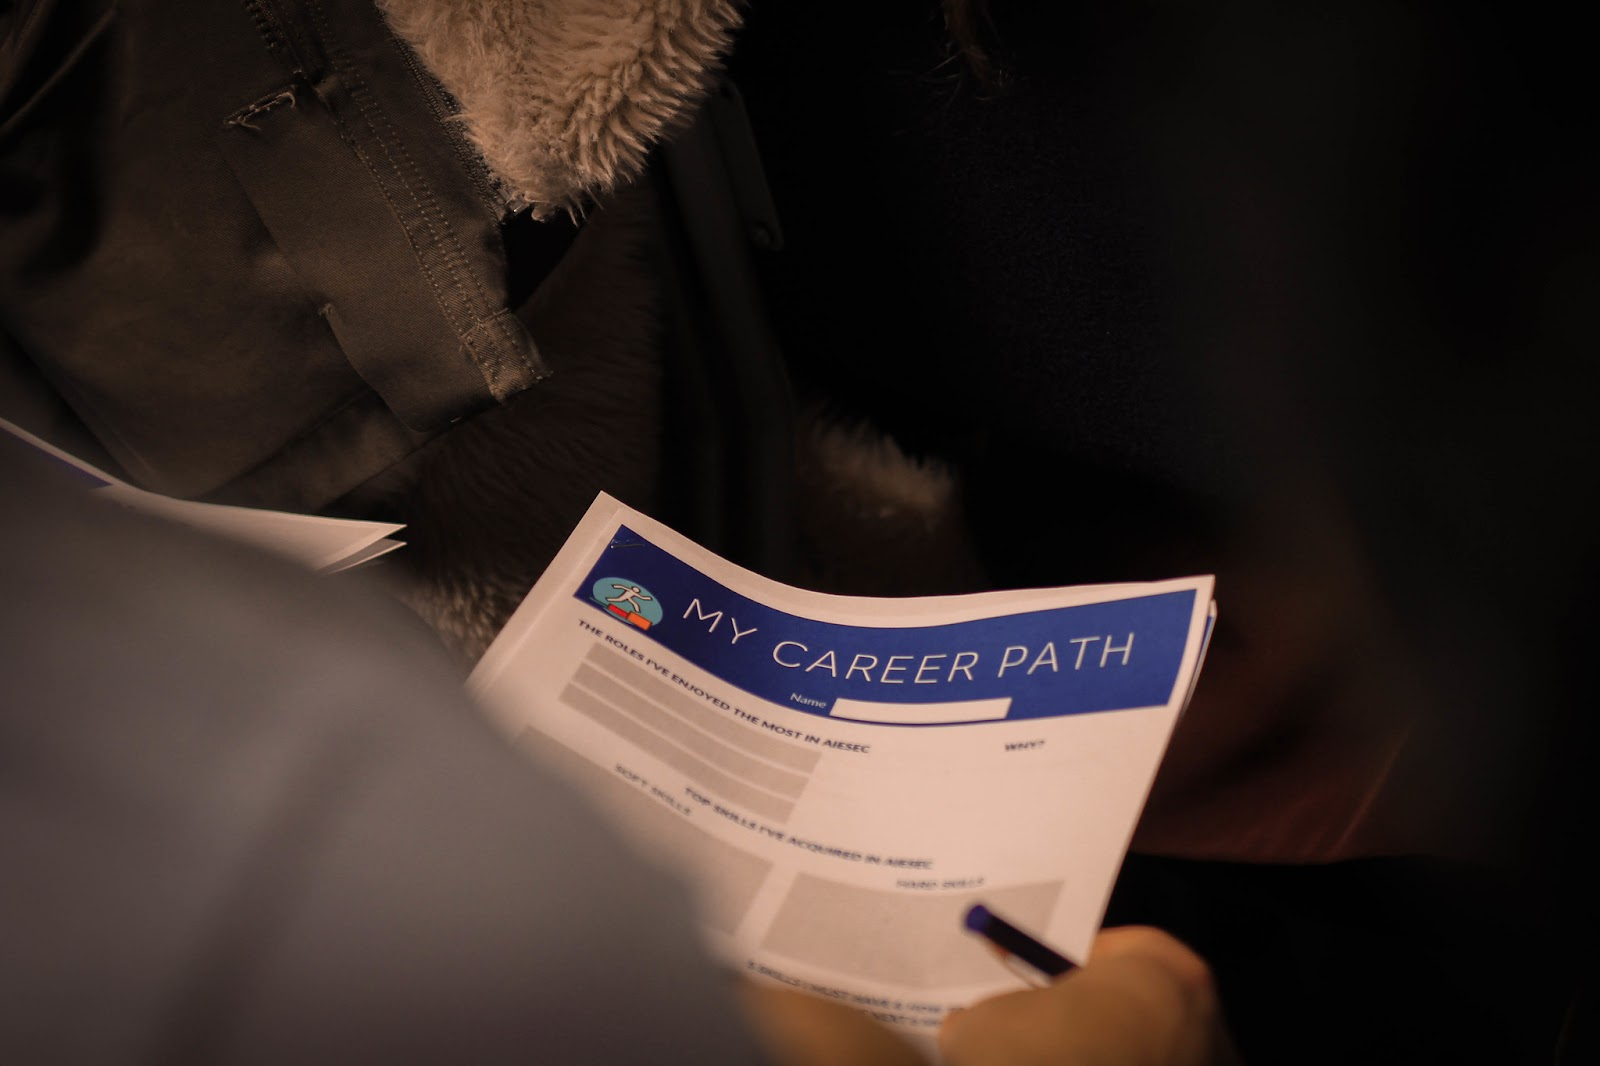 """My career path"" document"